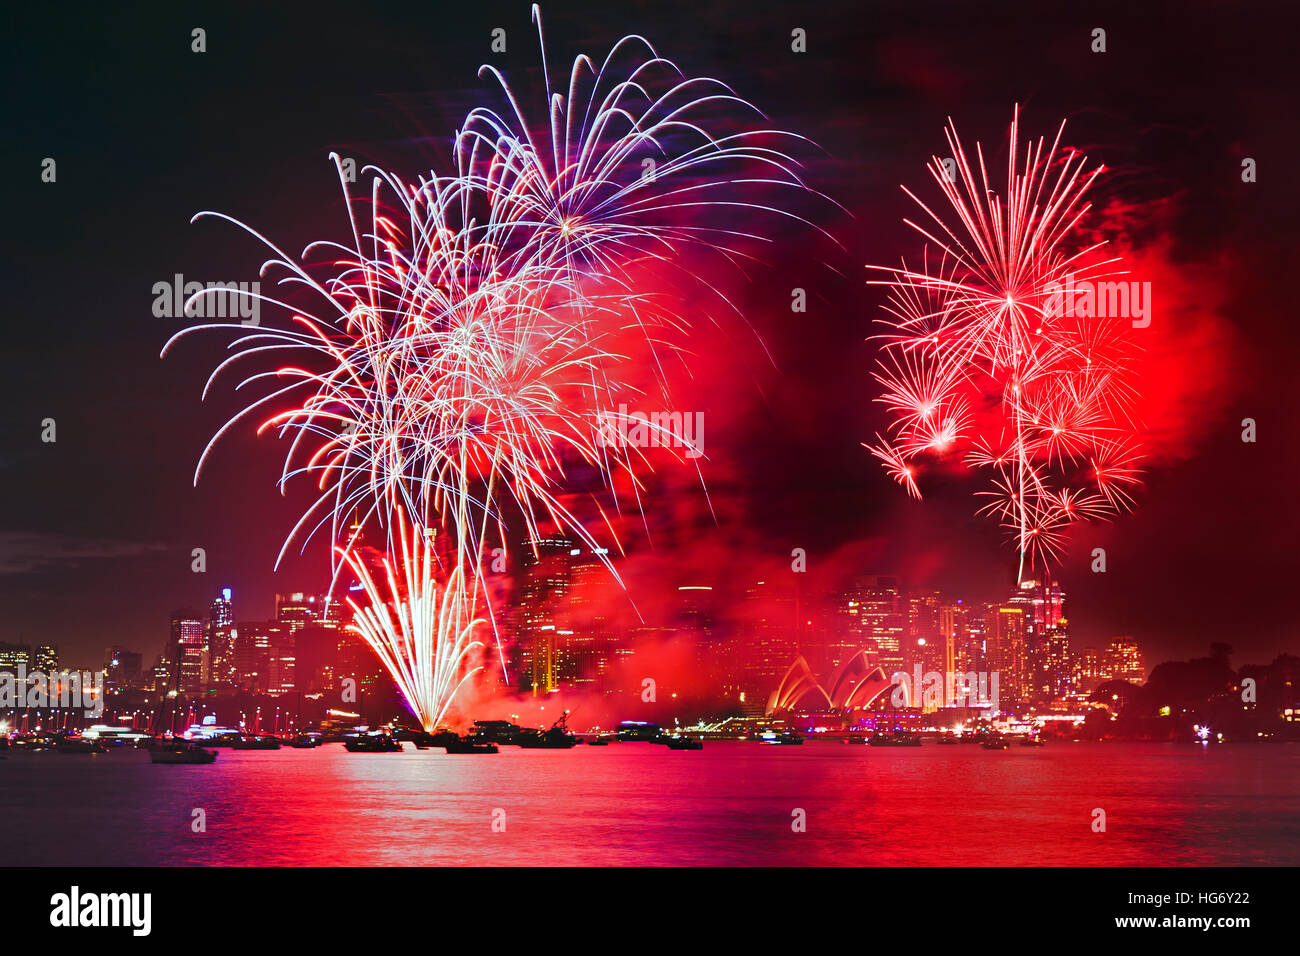 Bright red balls of new year eve fireworks in Sydney across illuminated waters of Harbour over skyscrapers of city - Stock Image